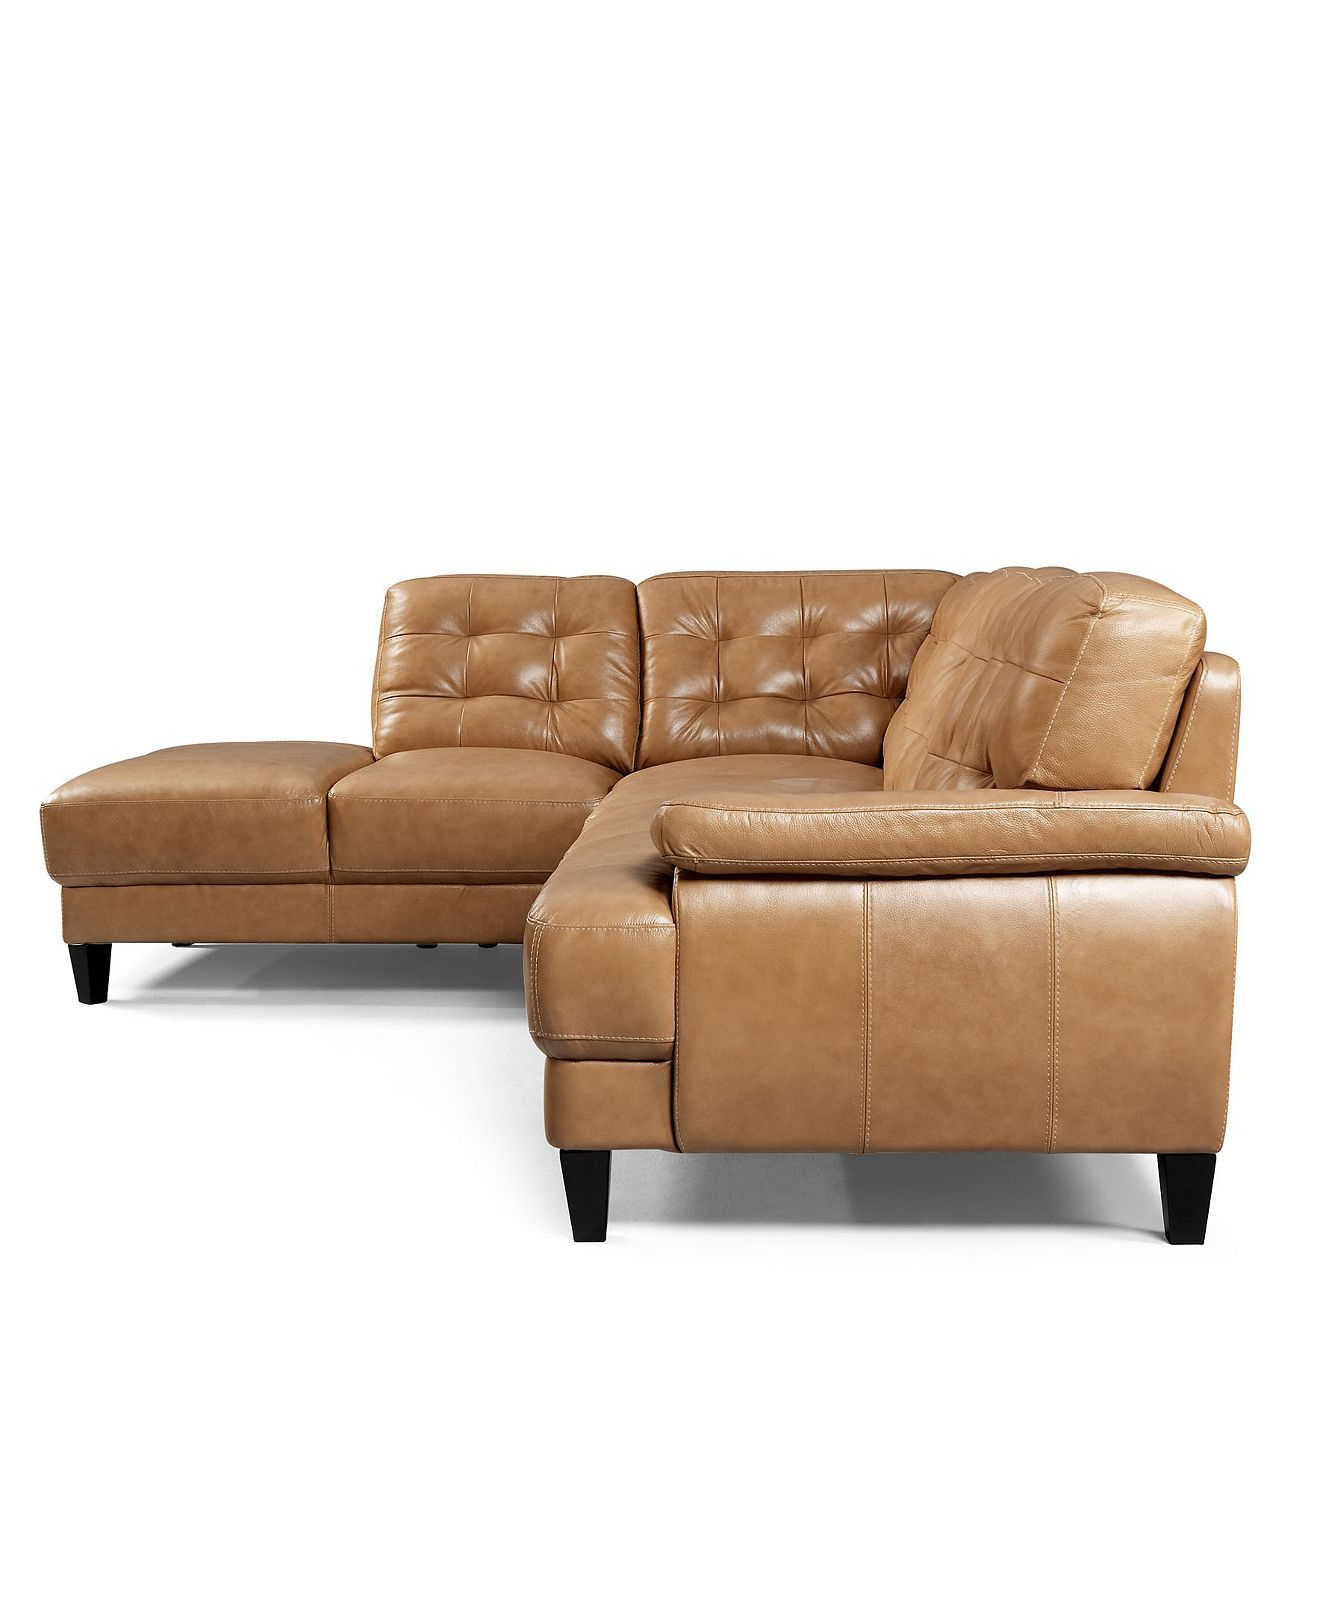 Low Profile Reclining Sofa – Microfiber Power Reclining In Well Known Navigator Manual Reclining Sofas (View 5 of 15)